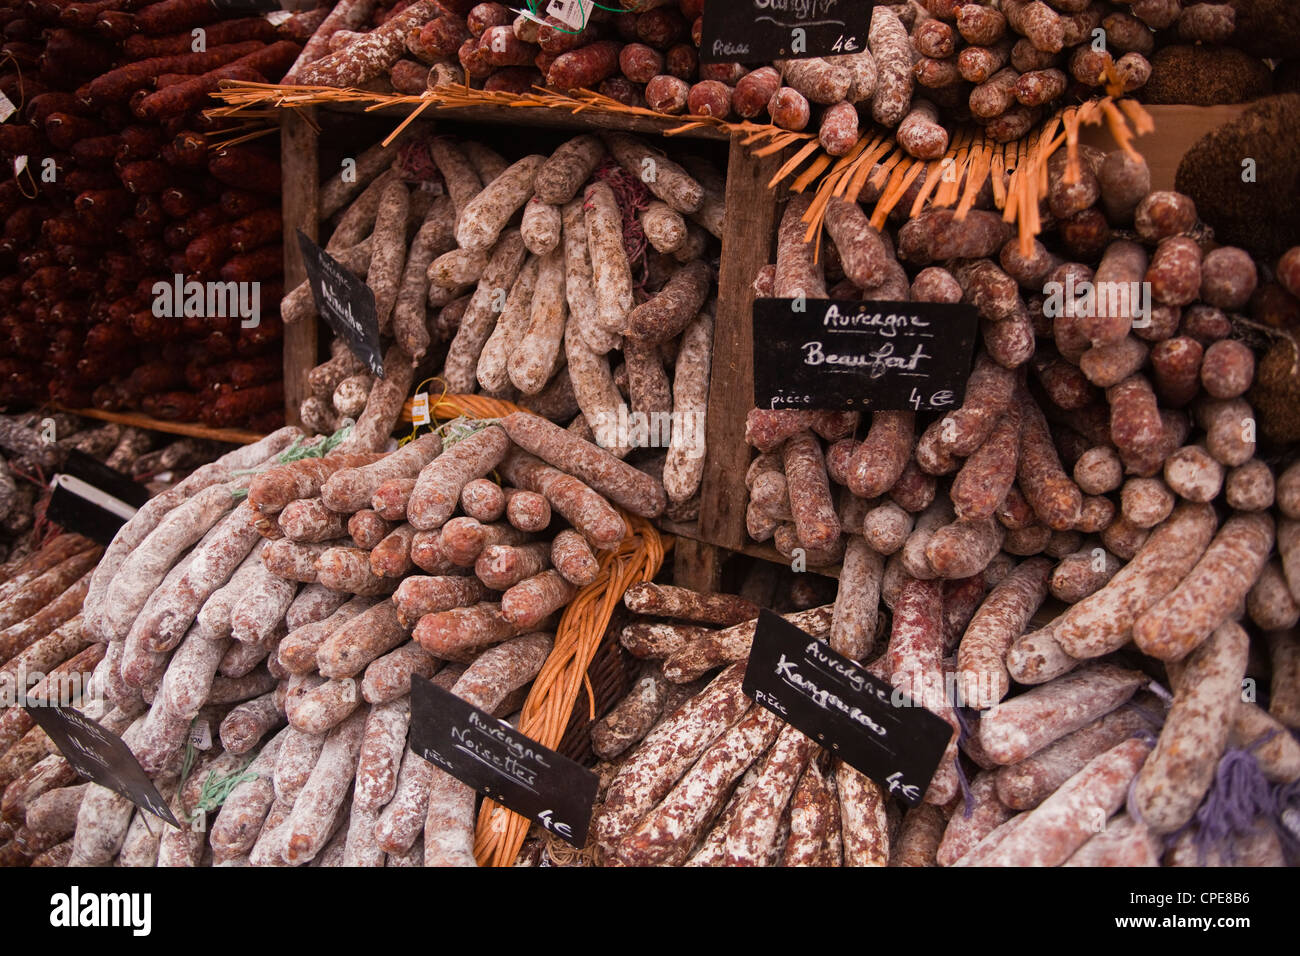 Sausages and saucisson on sale at market in Tours, Indre-et-Loire, Centre, France, Europe - Stock Image